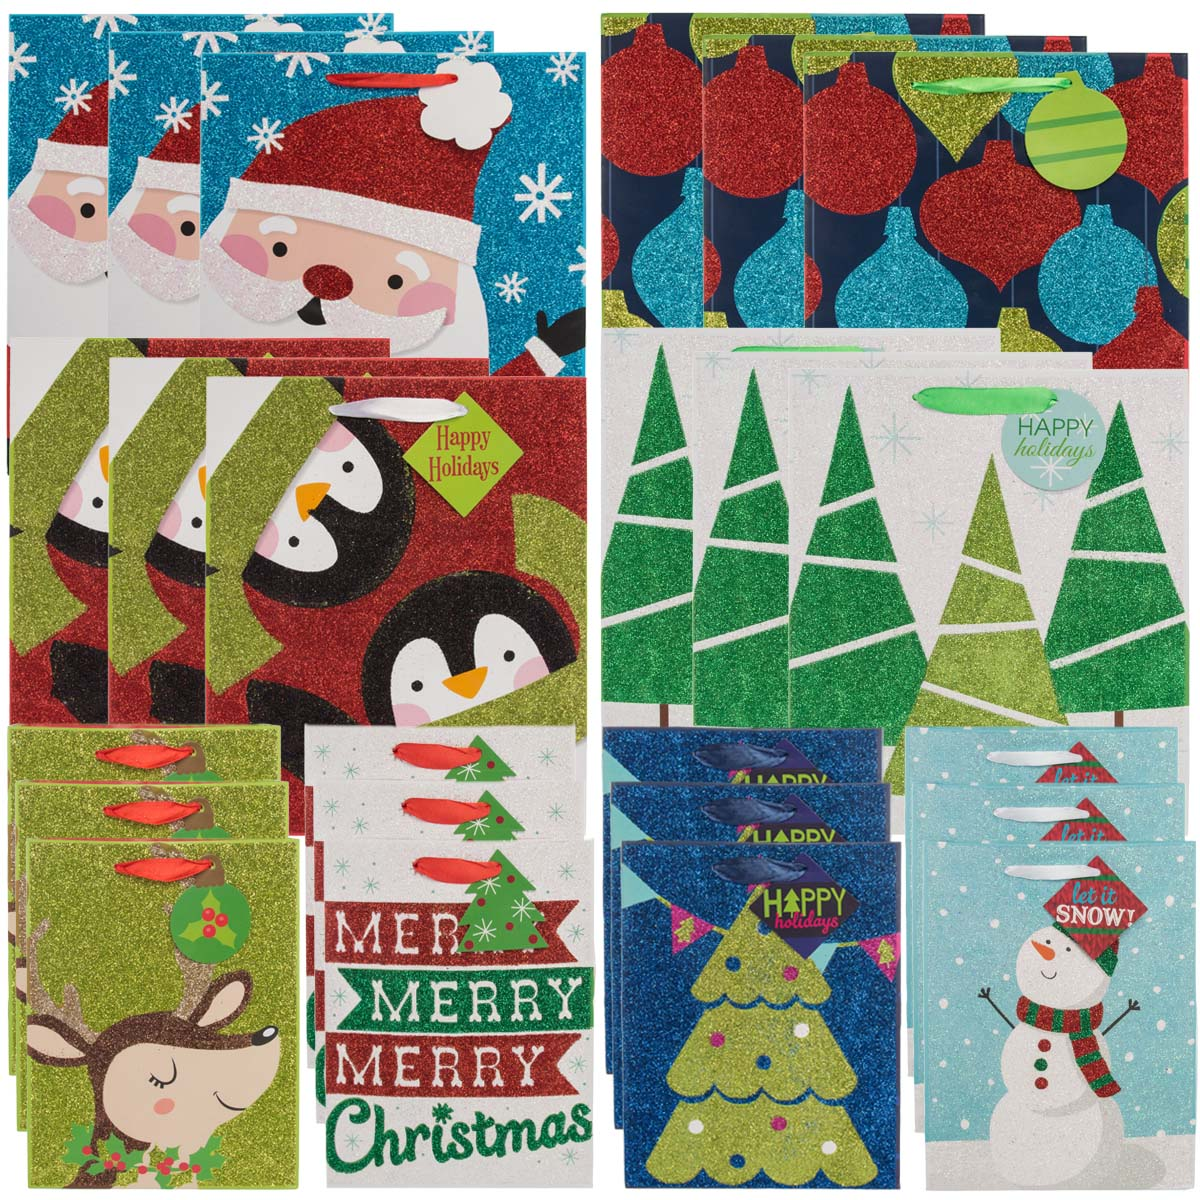 Paper Craft 24 Pack Assorted Christmas Gift Bags Set